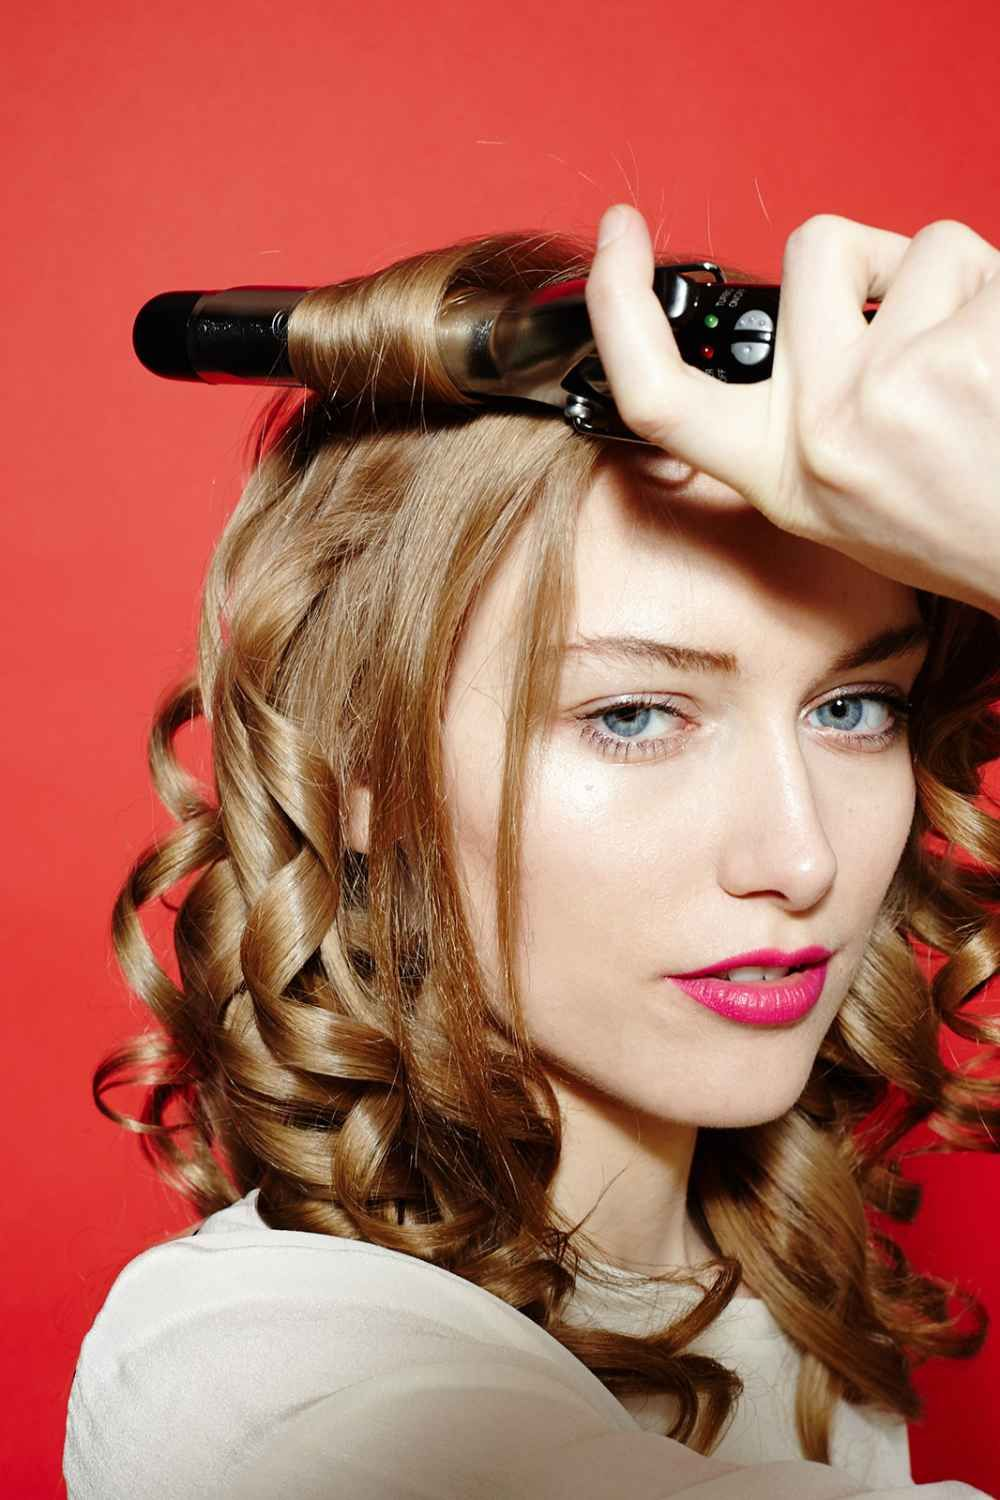 Curling Iron Hairstyles - Curly Hairstyle Guide | Curling ...